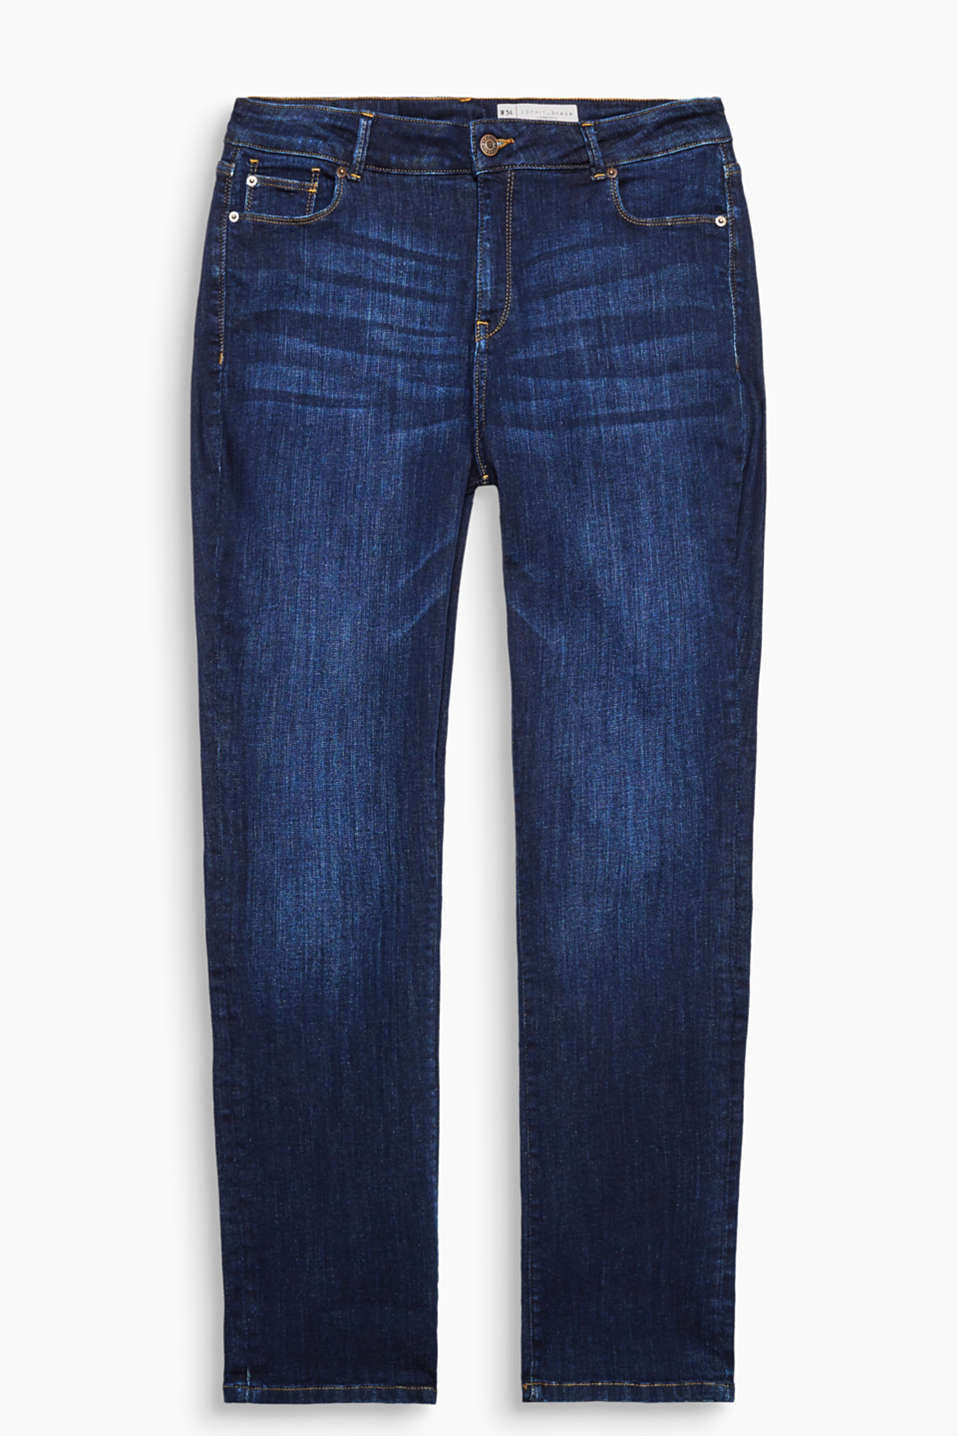 Cool jeans for beautiful curves: the perfect fit in sizes 34 to 37 in a straight leg width, in three garment washes